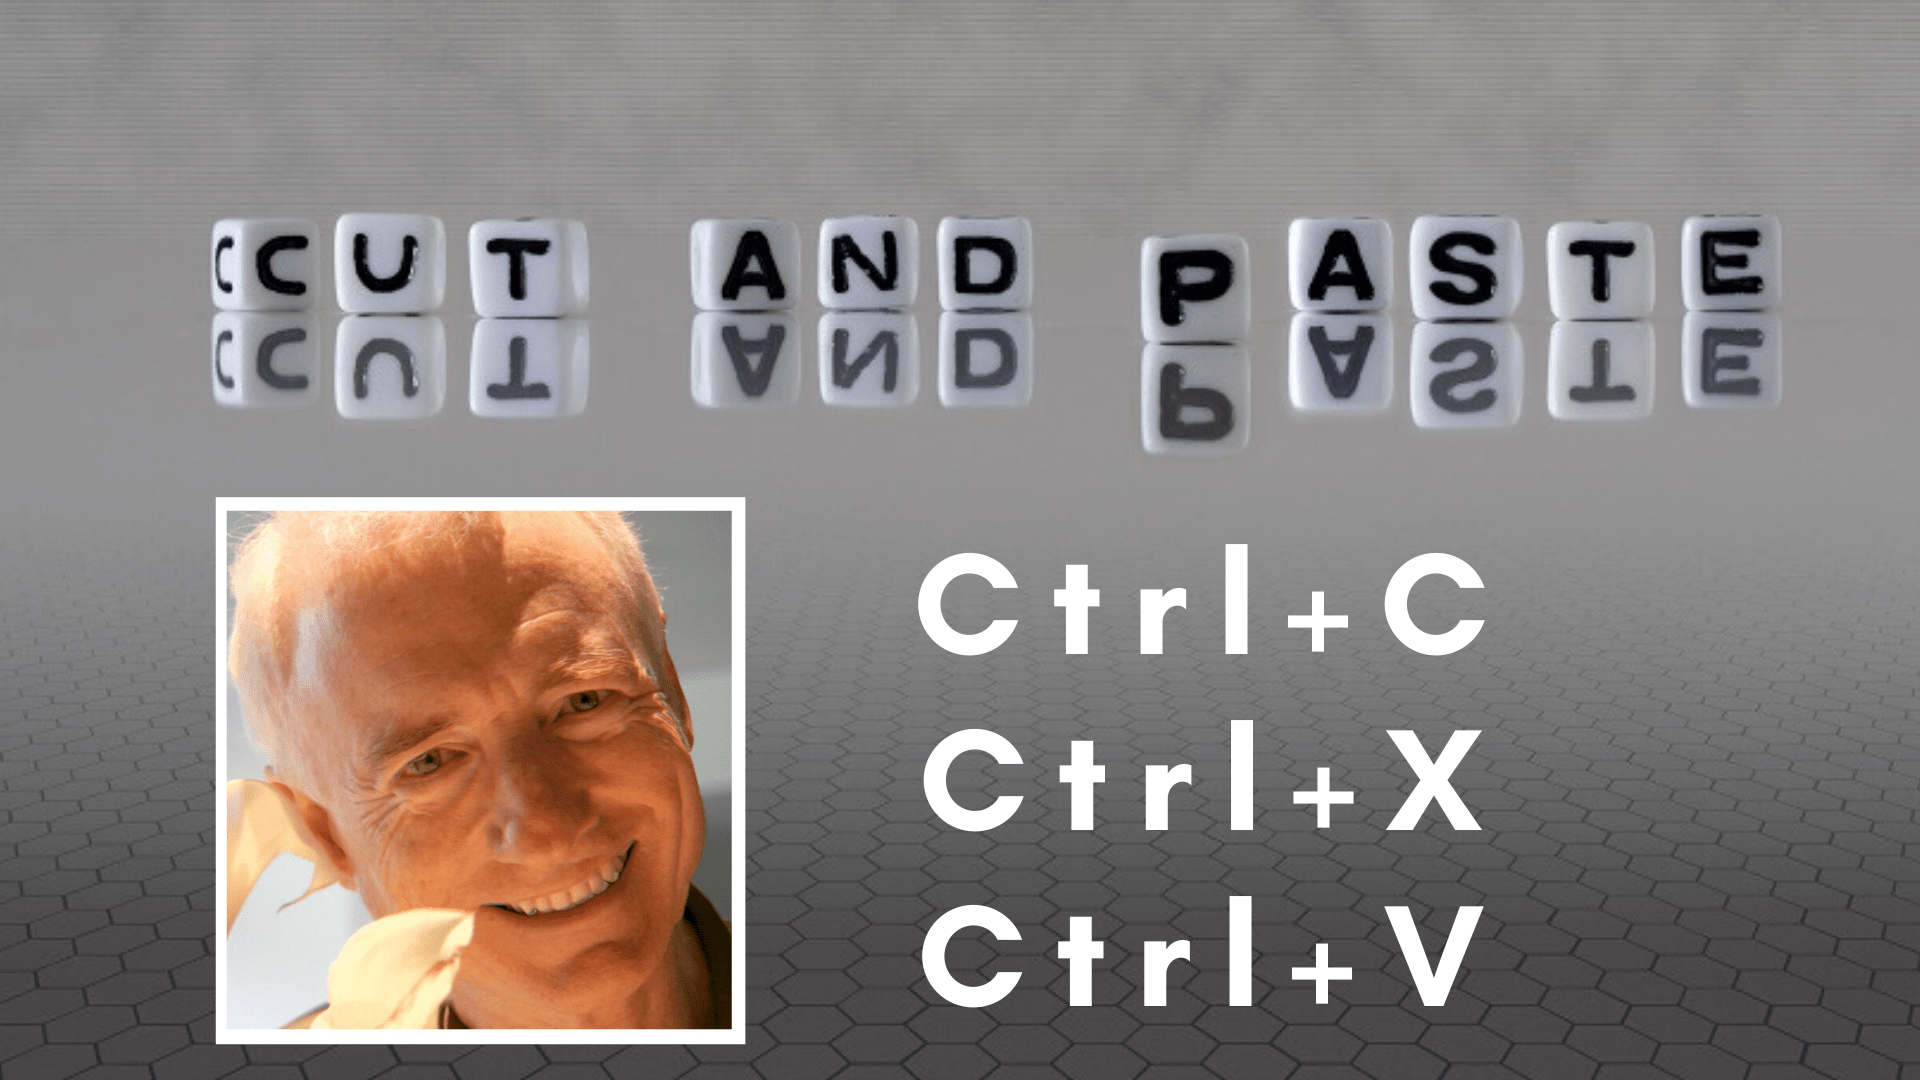 Larry Tesler, the cut and paste king, has died